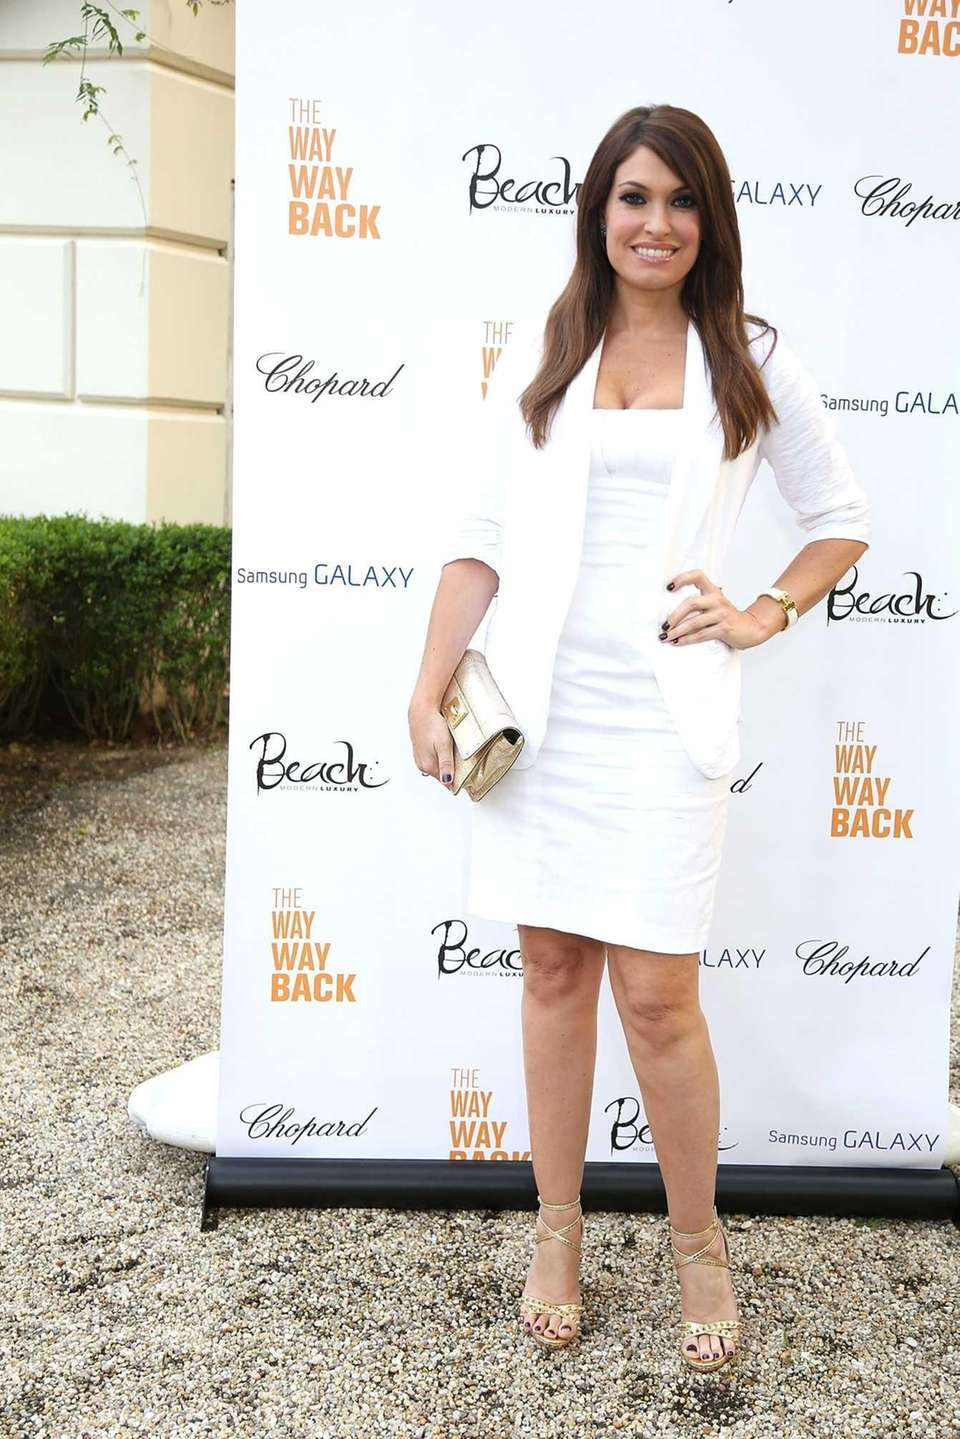 Kimberly Guilfoyle attends the after-party for a special